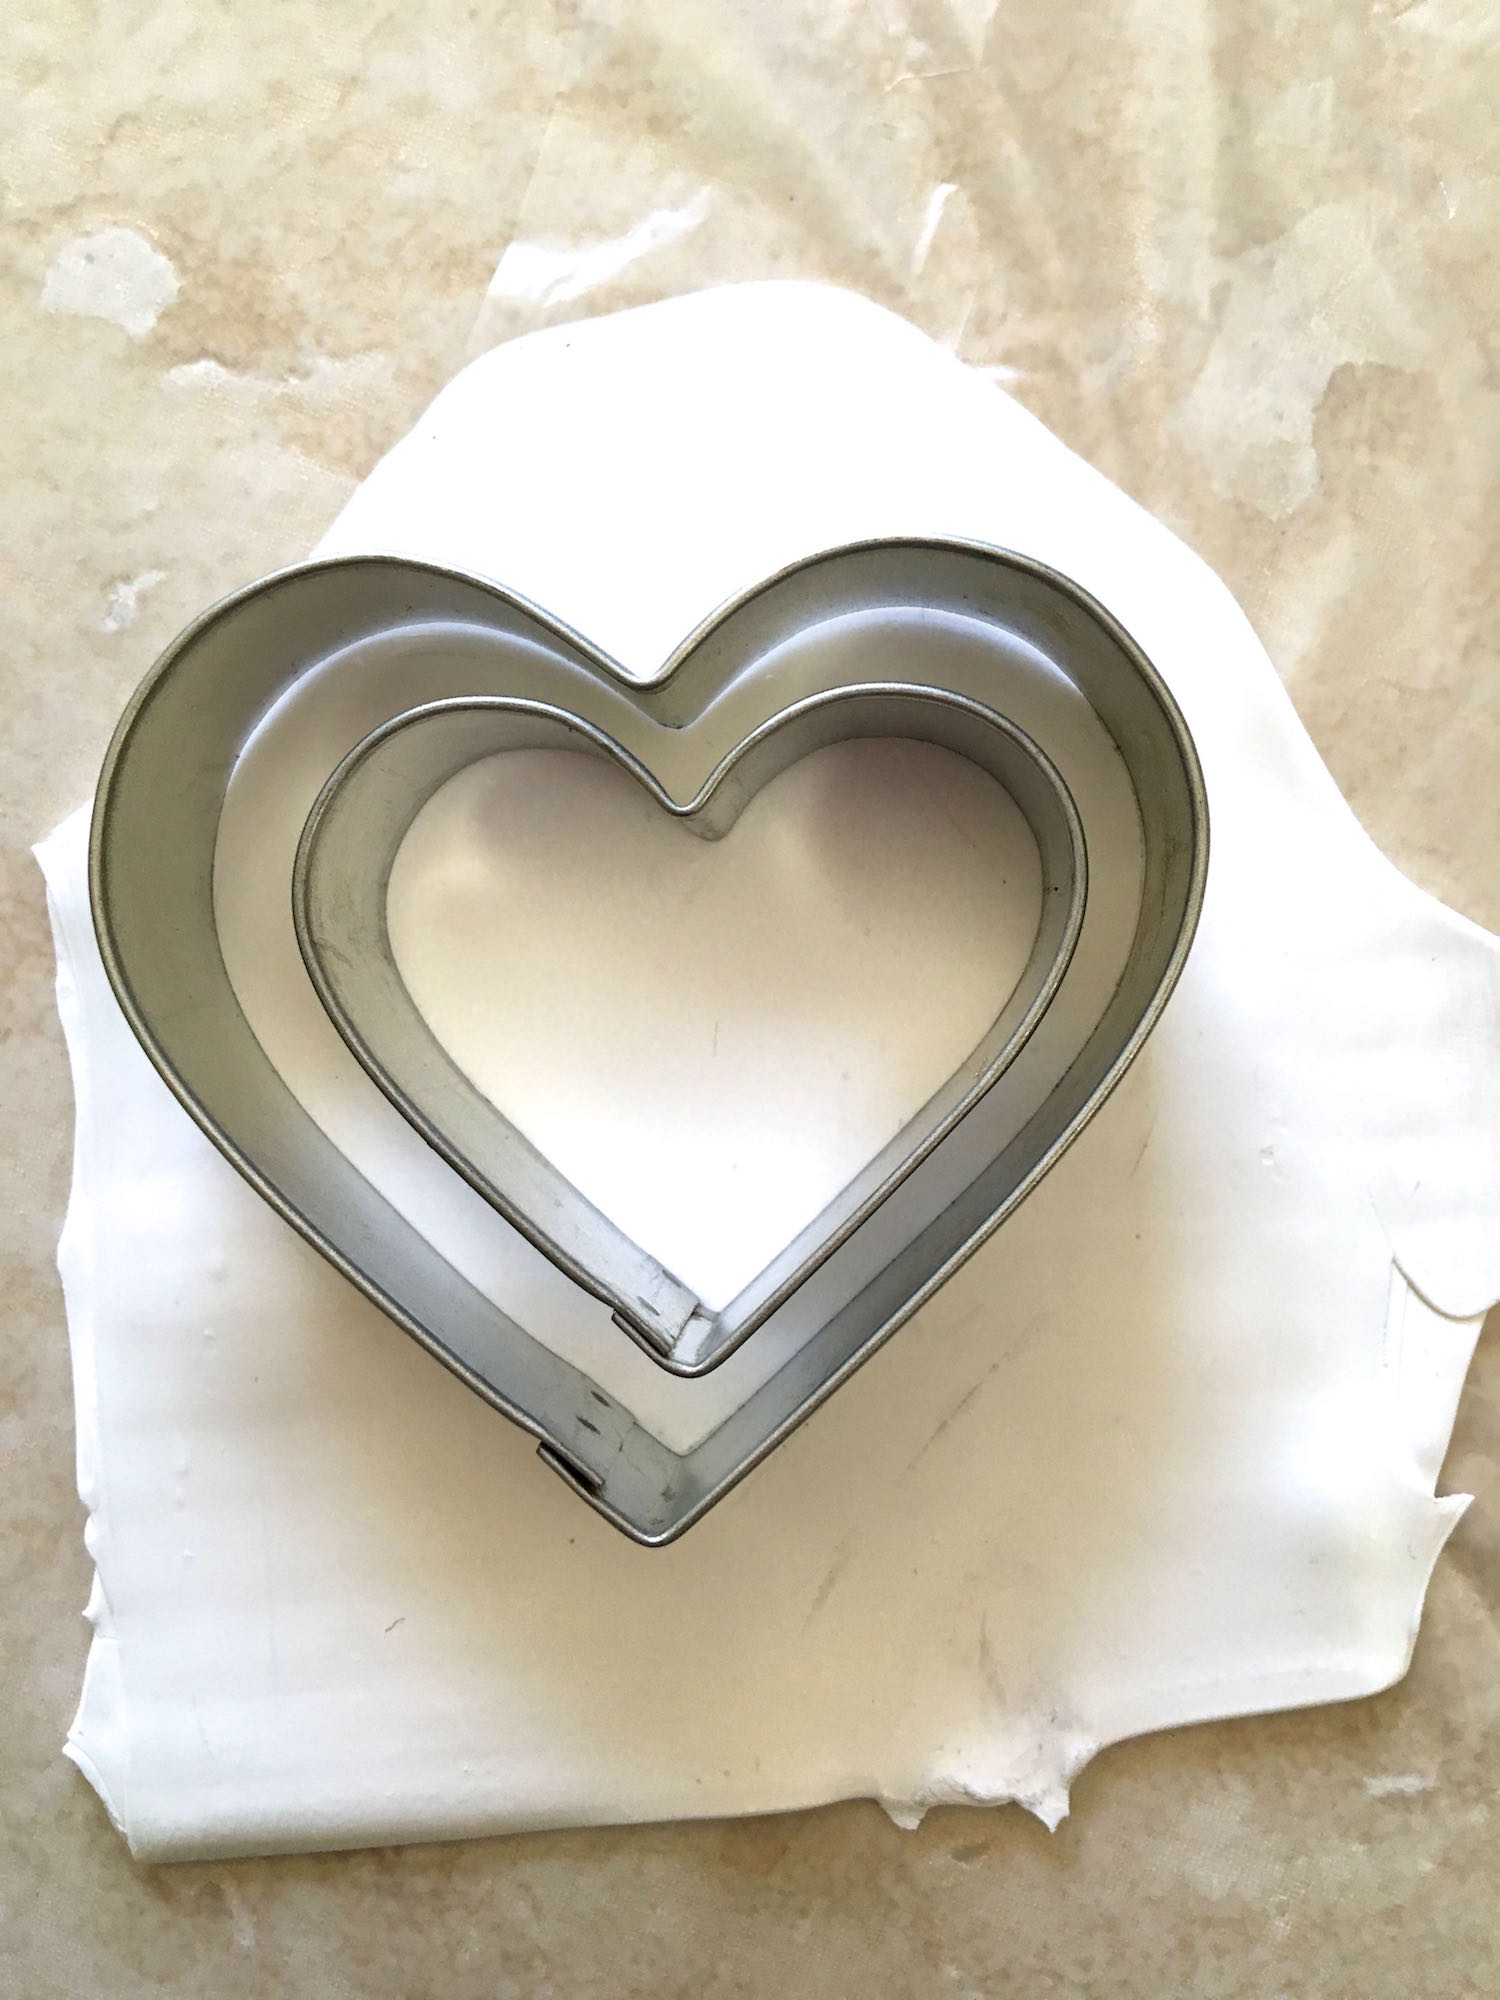 step 1 - Roll white clay on the # 2 setting. Cut a heart shape from the clay with a cutter larger than the one you will use for you final piece.